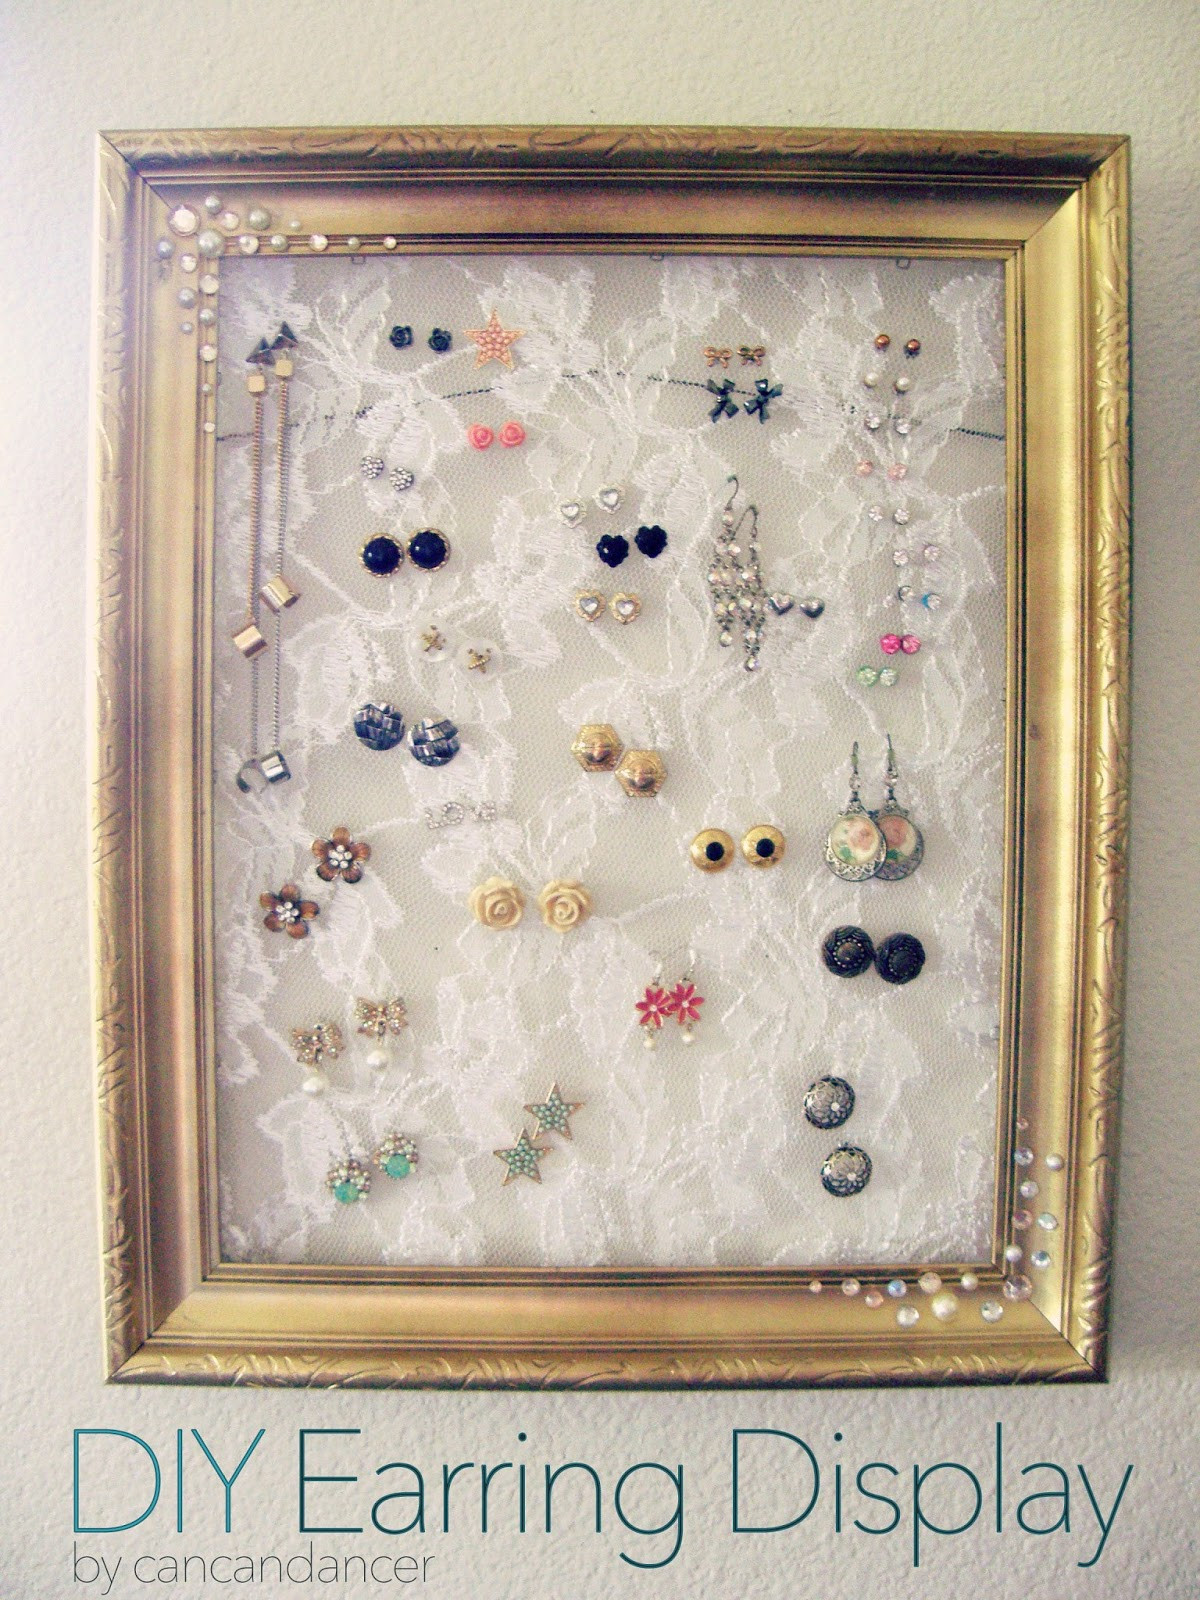 Best ideas about DIY Earring Display . Save or Pin Can Can Dancer DIY Earring Display Now.